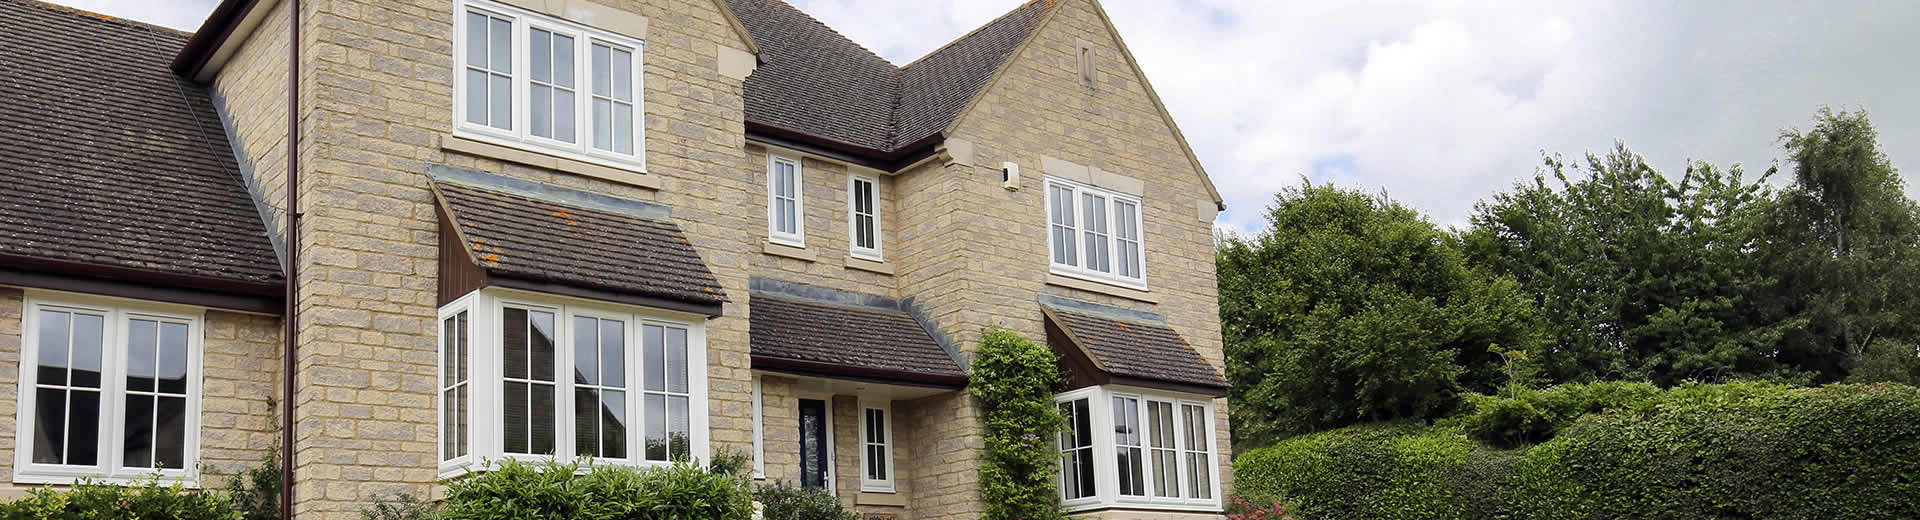 Full House uPVC Installations